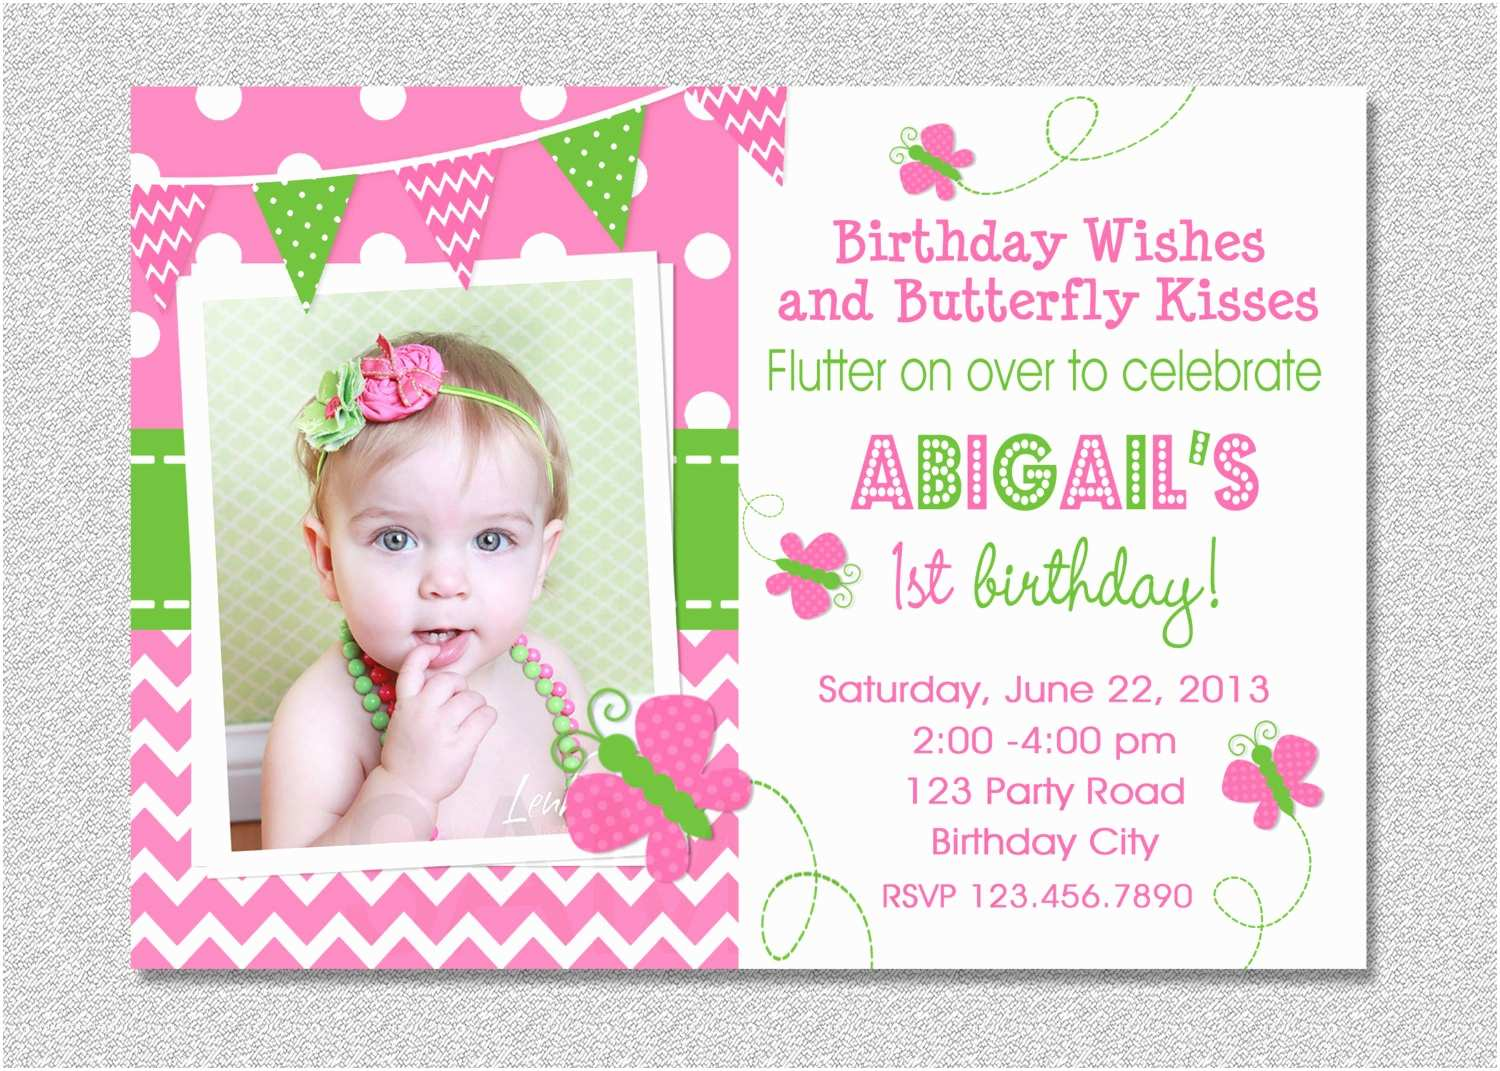 Butterfly Birthday Invitations butterfly Birthday Invitation butterfly Invitation Girl